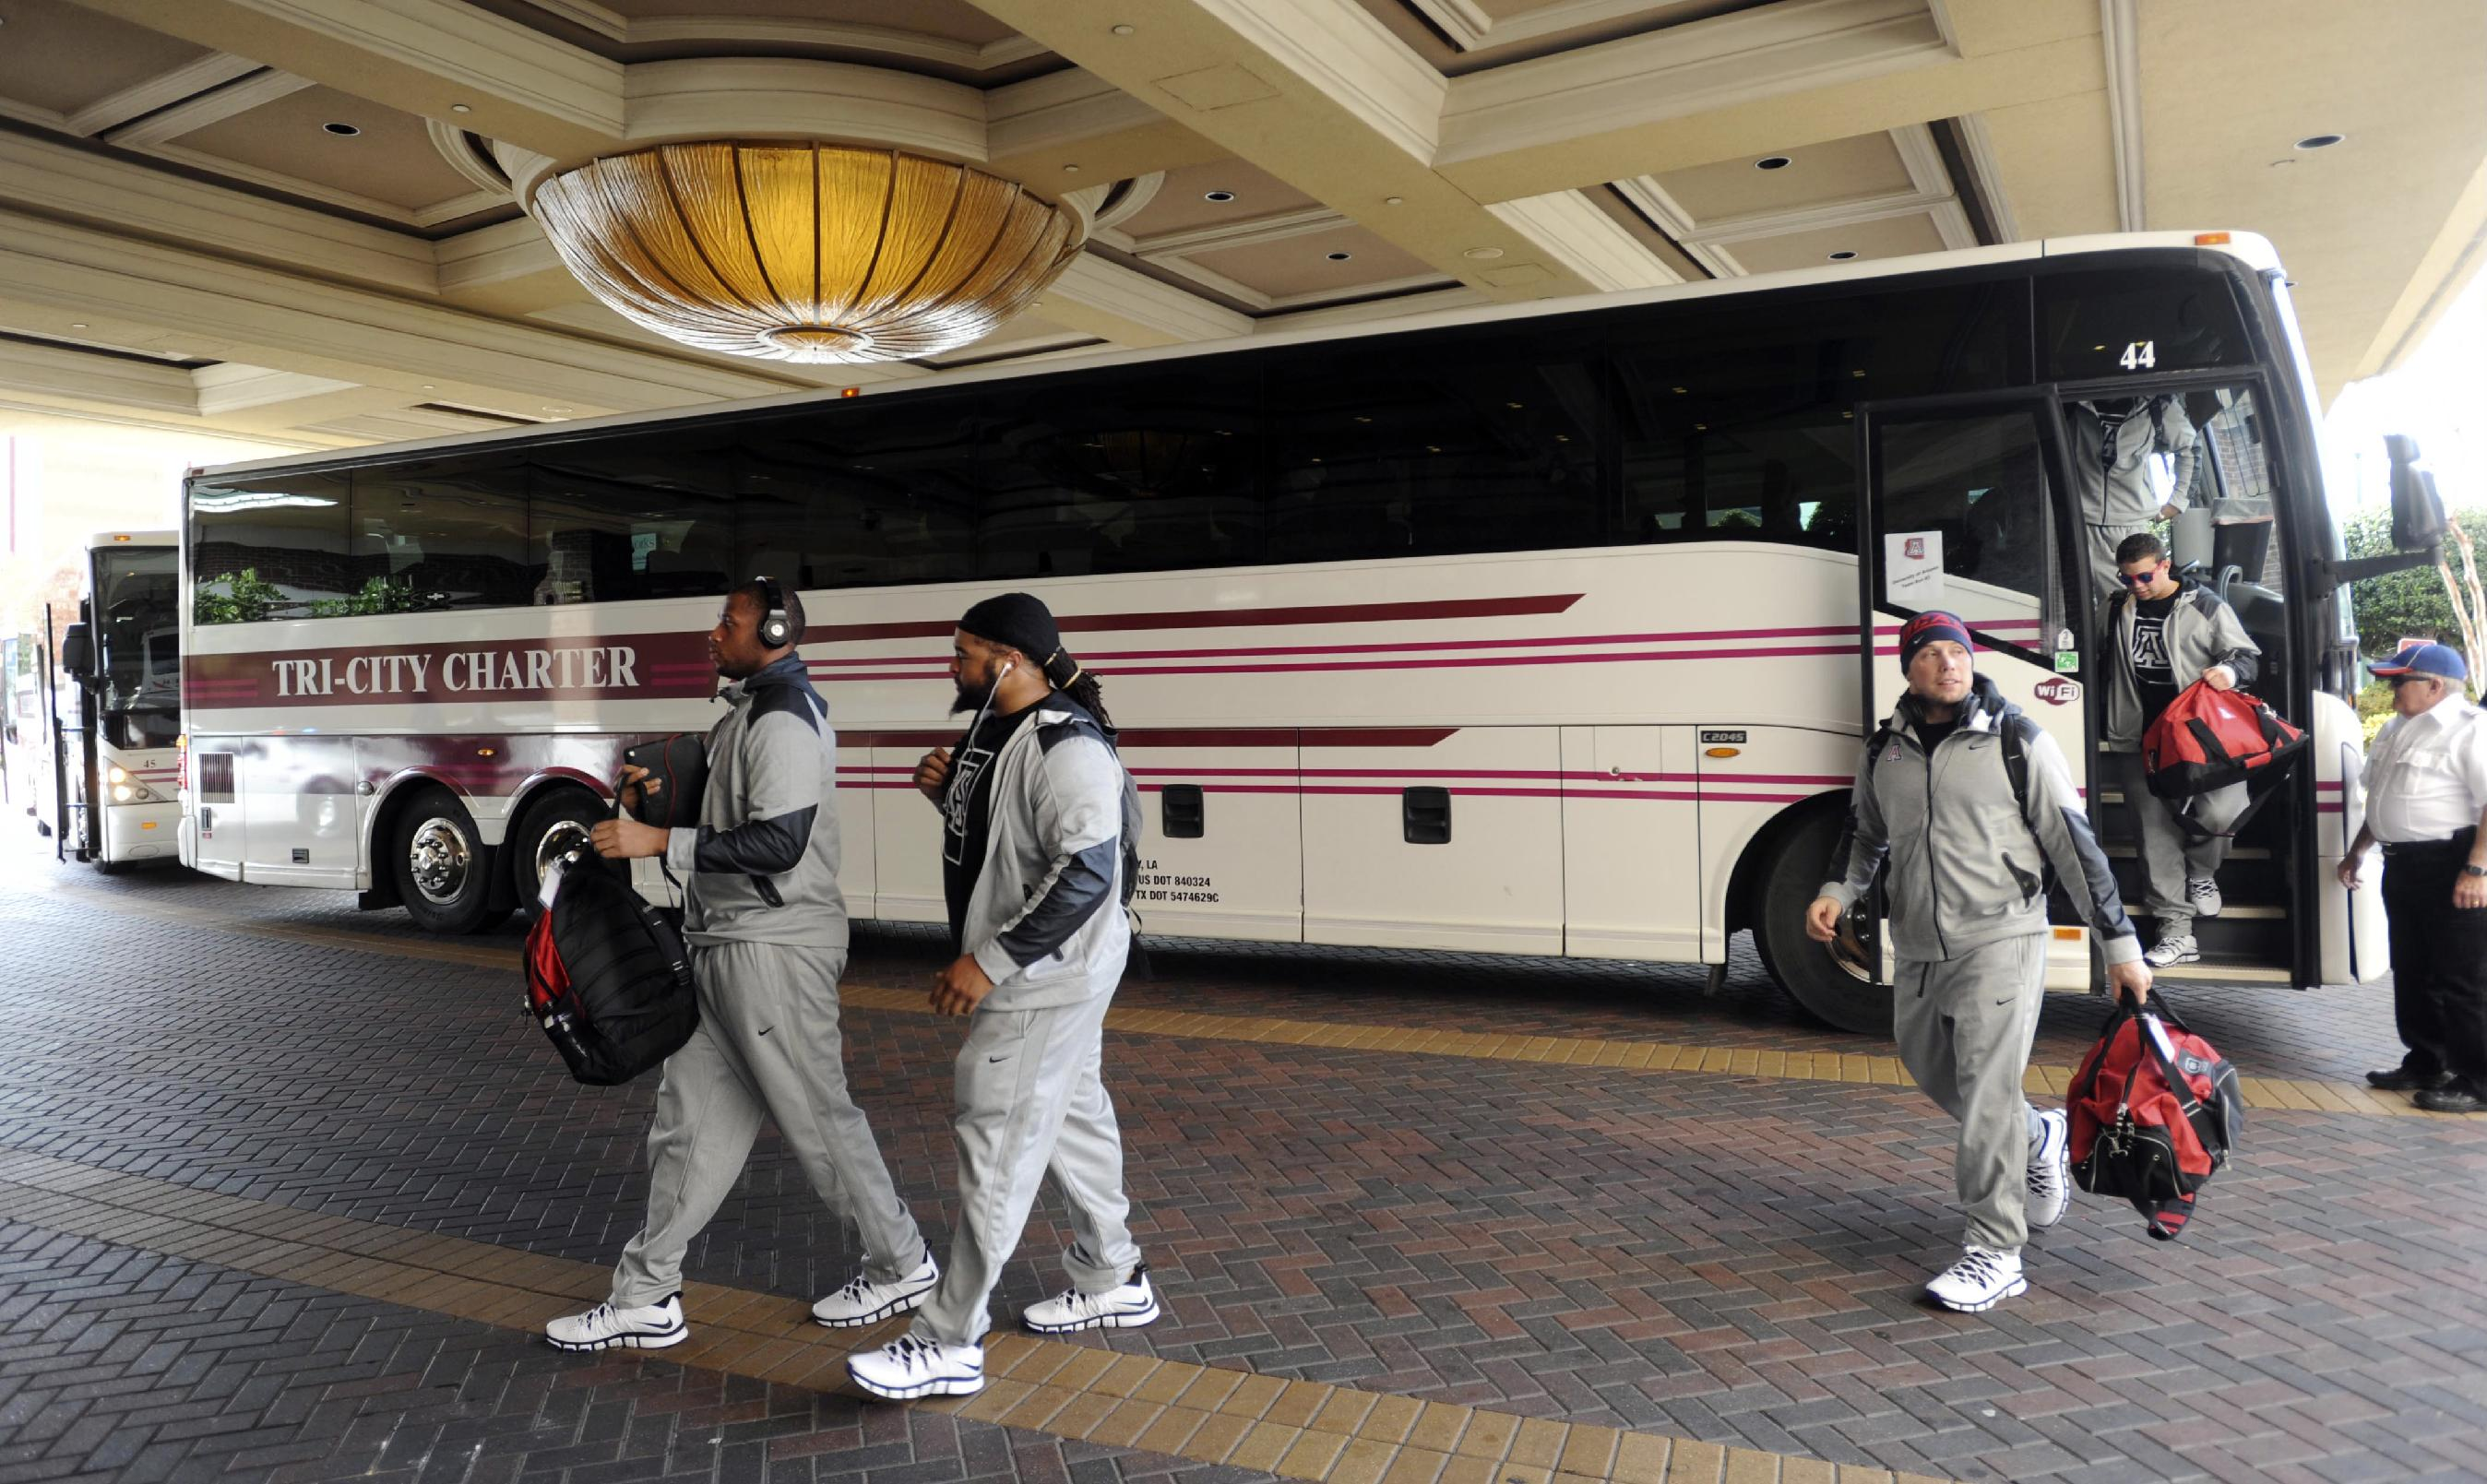 Arizona players arrive in Shreveport, La., Friday Dec. 27, 2013. Arizona takes on Boston College in the AdvoCare V100 Bowl NCAA college football game on Tuesday, Dec. 31